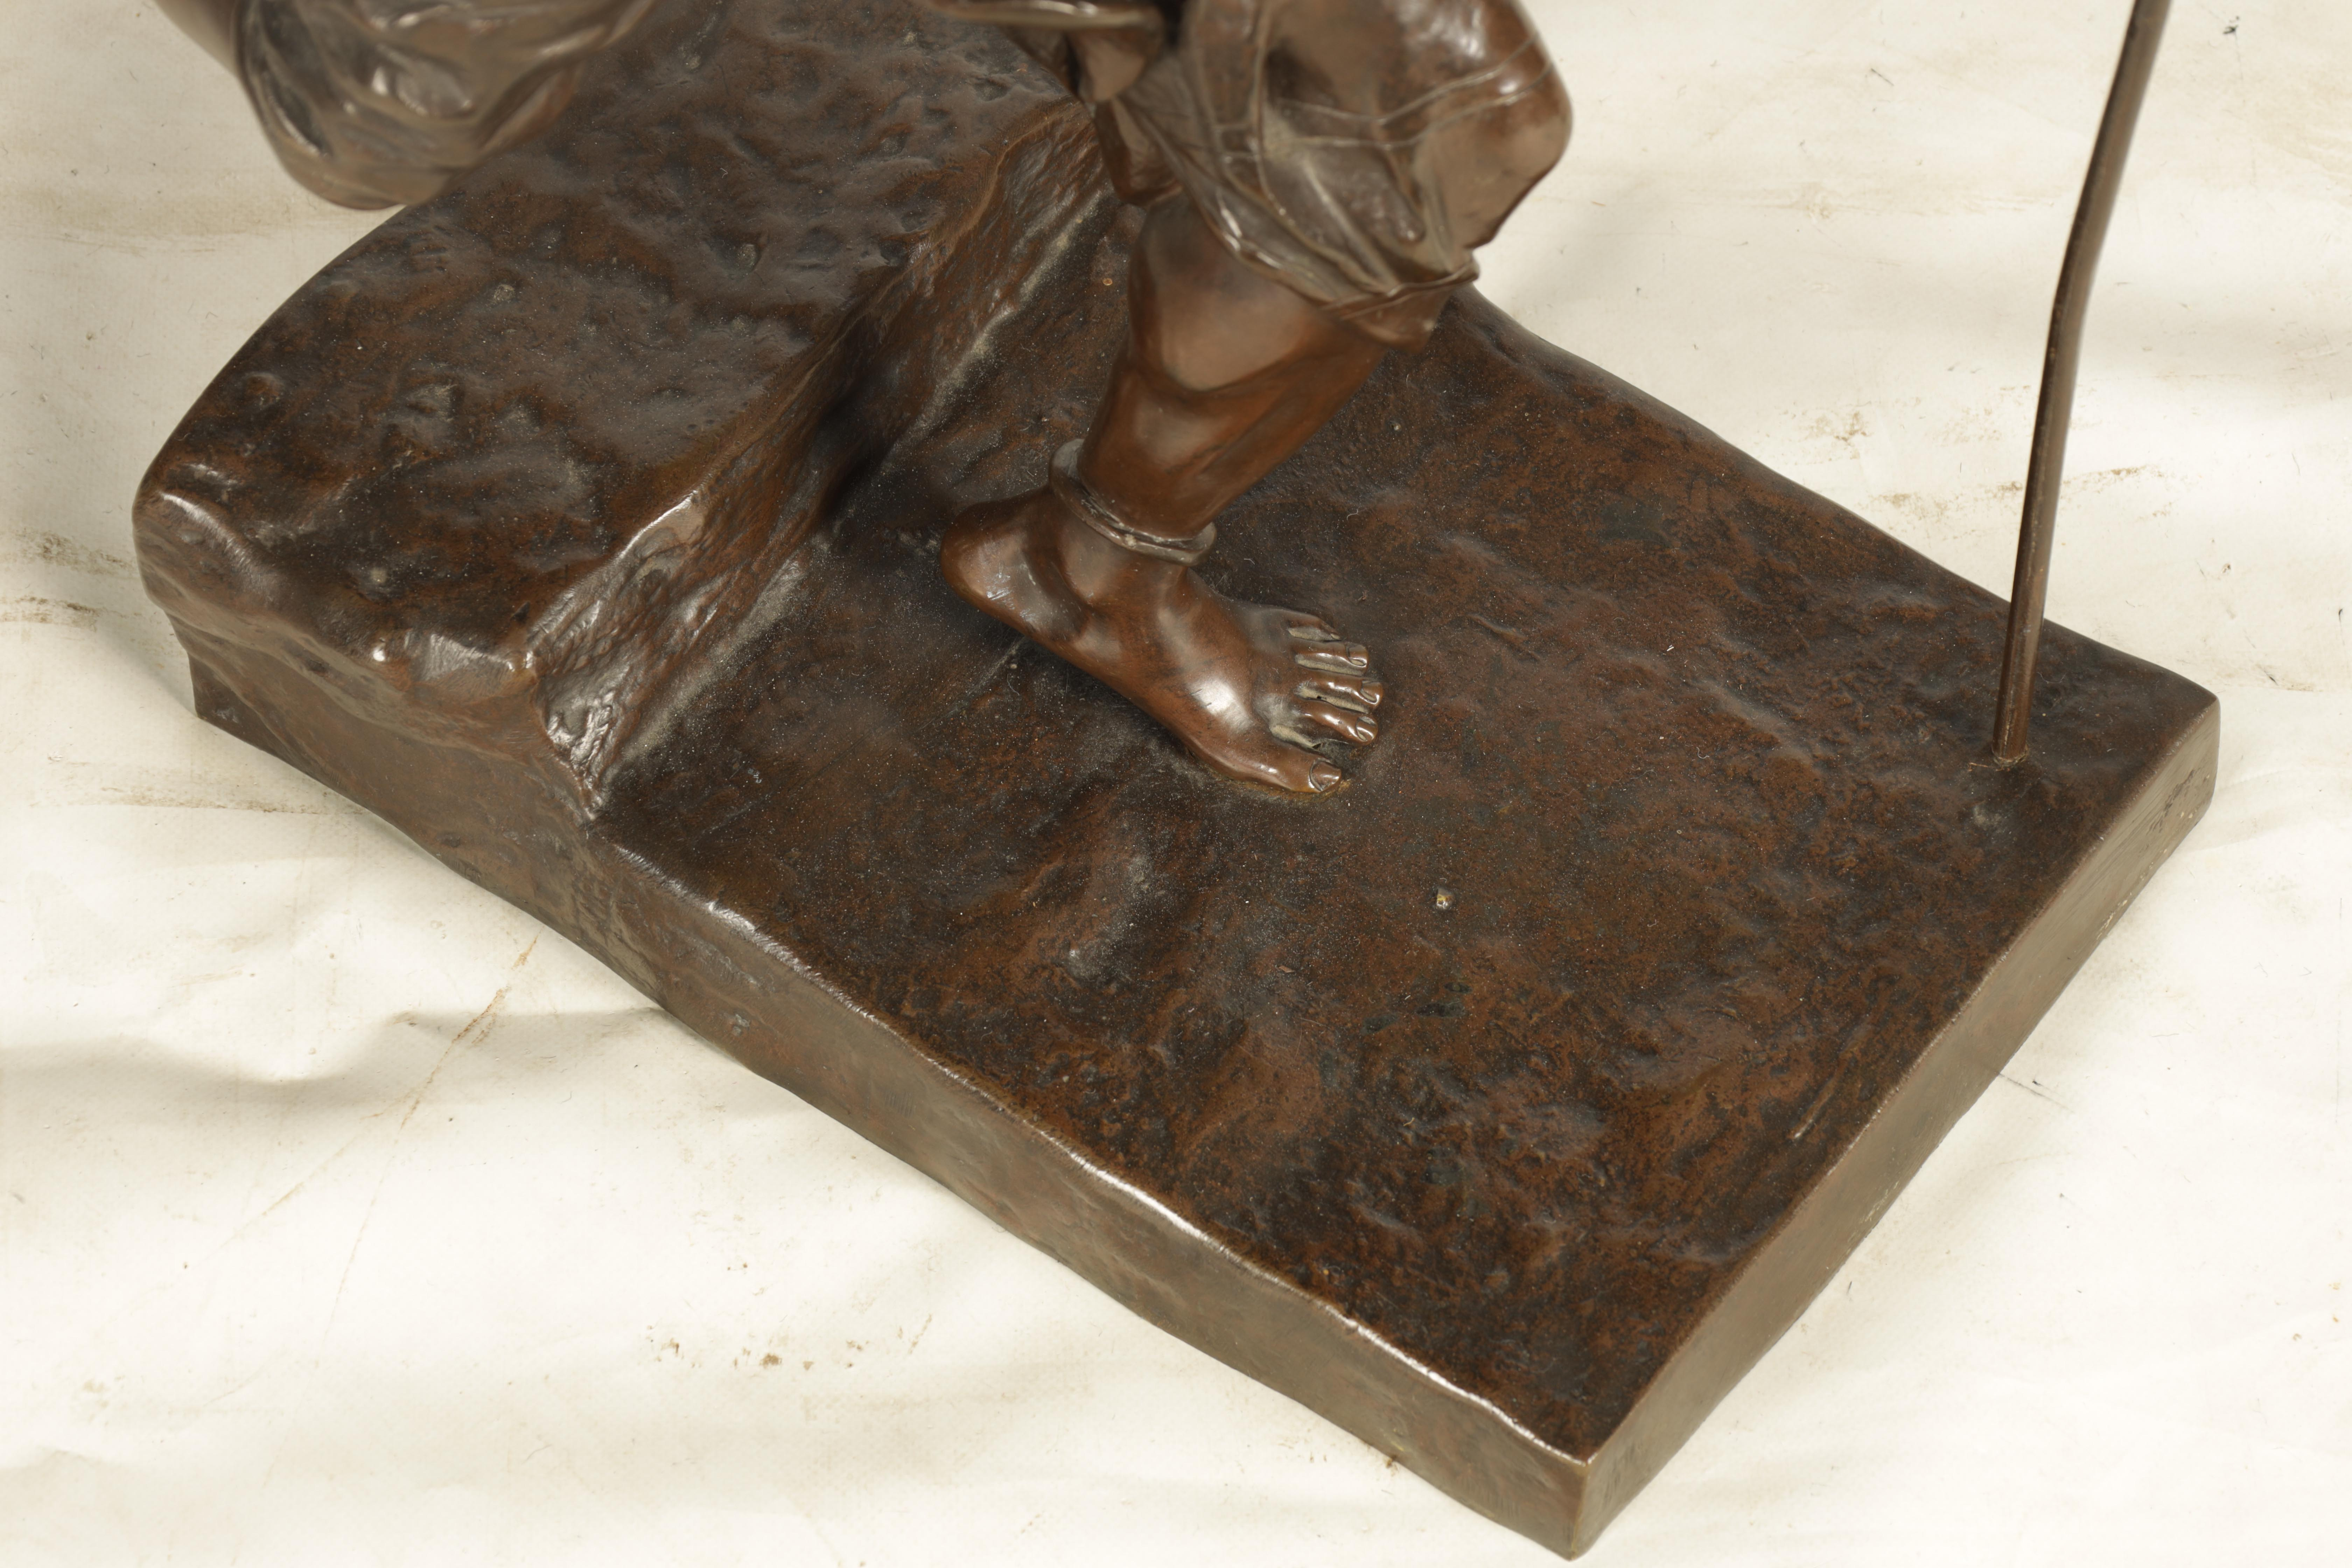 A 19TH CENTURY FRENCH FIGURAL BRONZE depicting an Eastern male figure walking with shepherds crook - Image 4 of 5